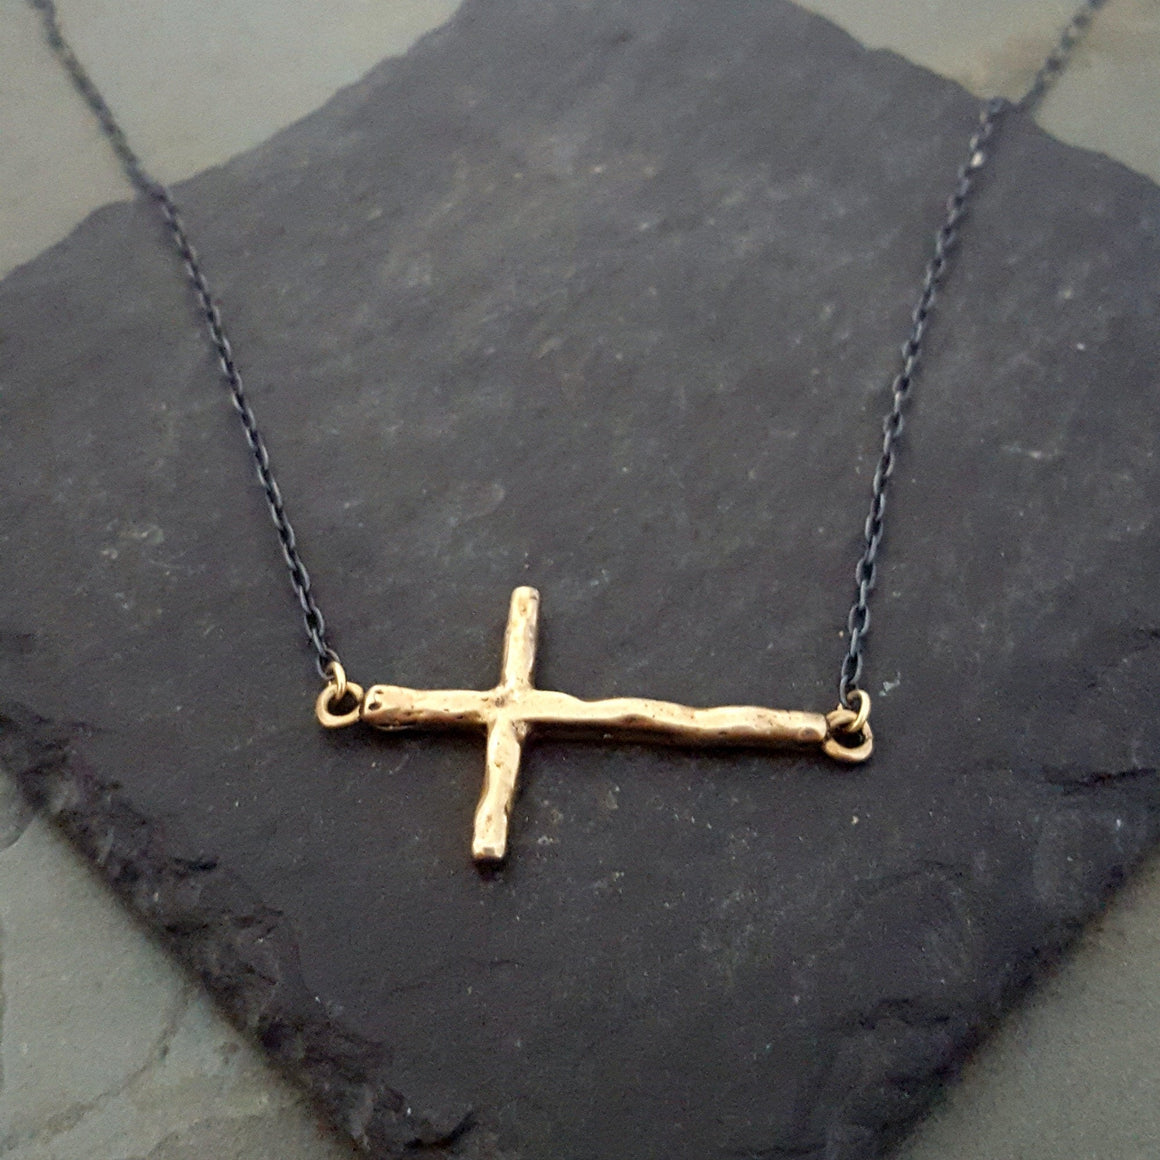 Solid BRONZE Gold Sideways Cross Black Chain Necklace - ViaLove Designs